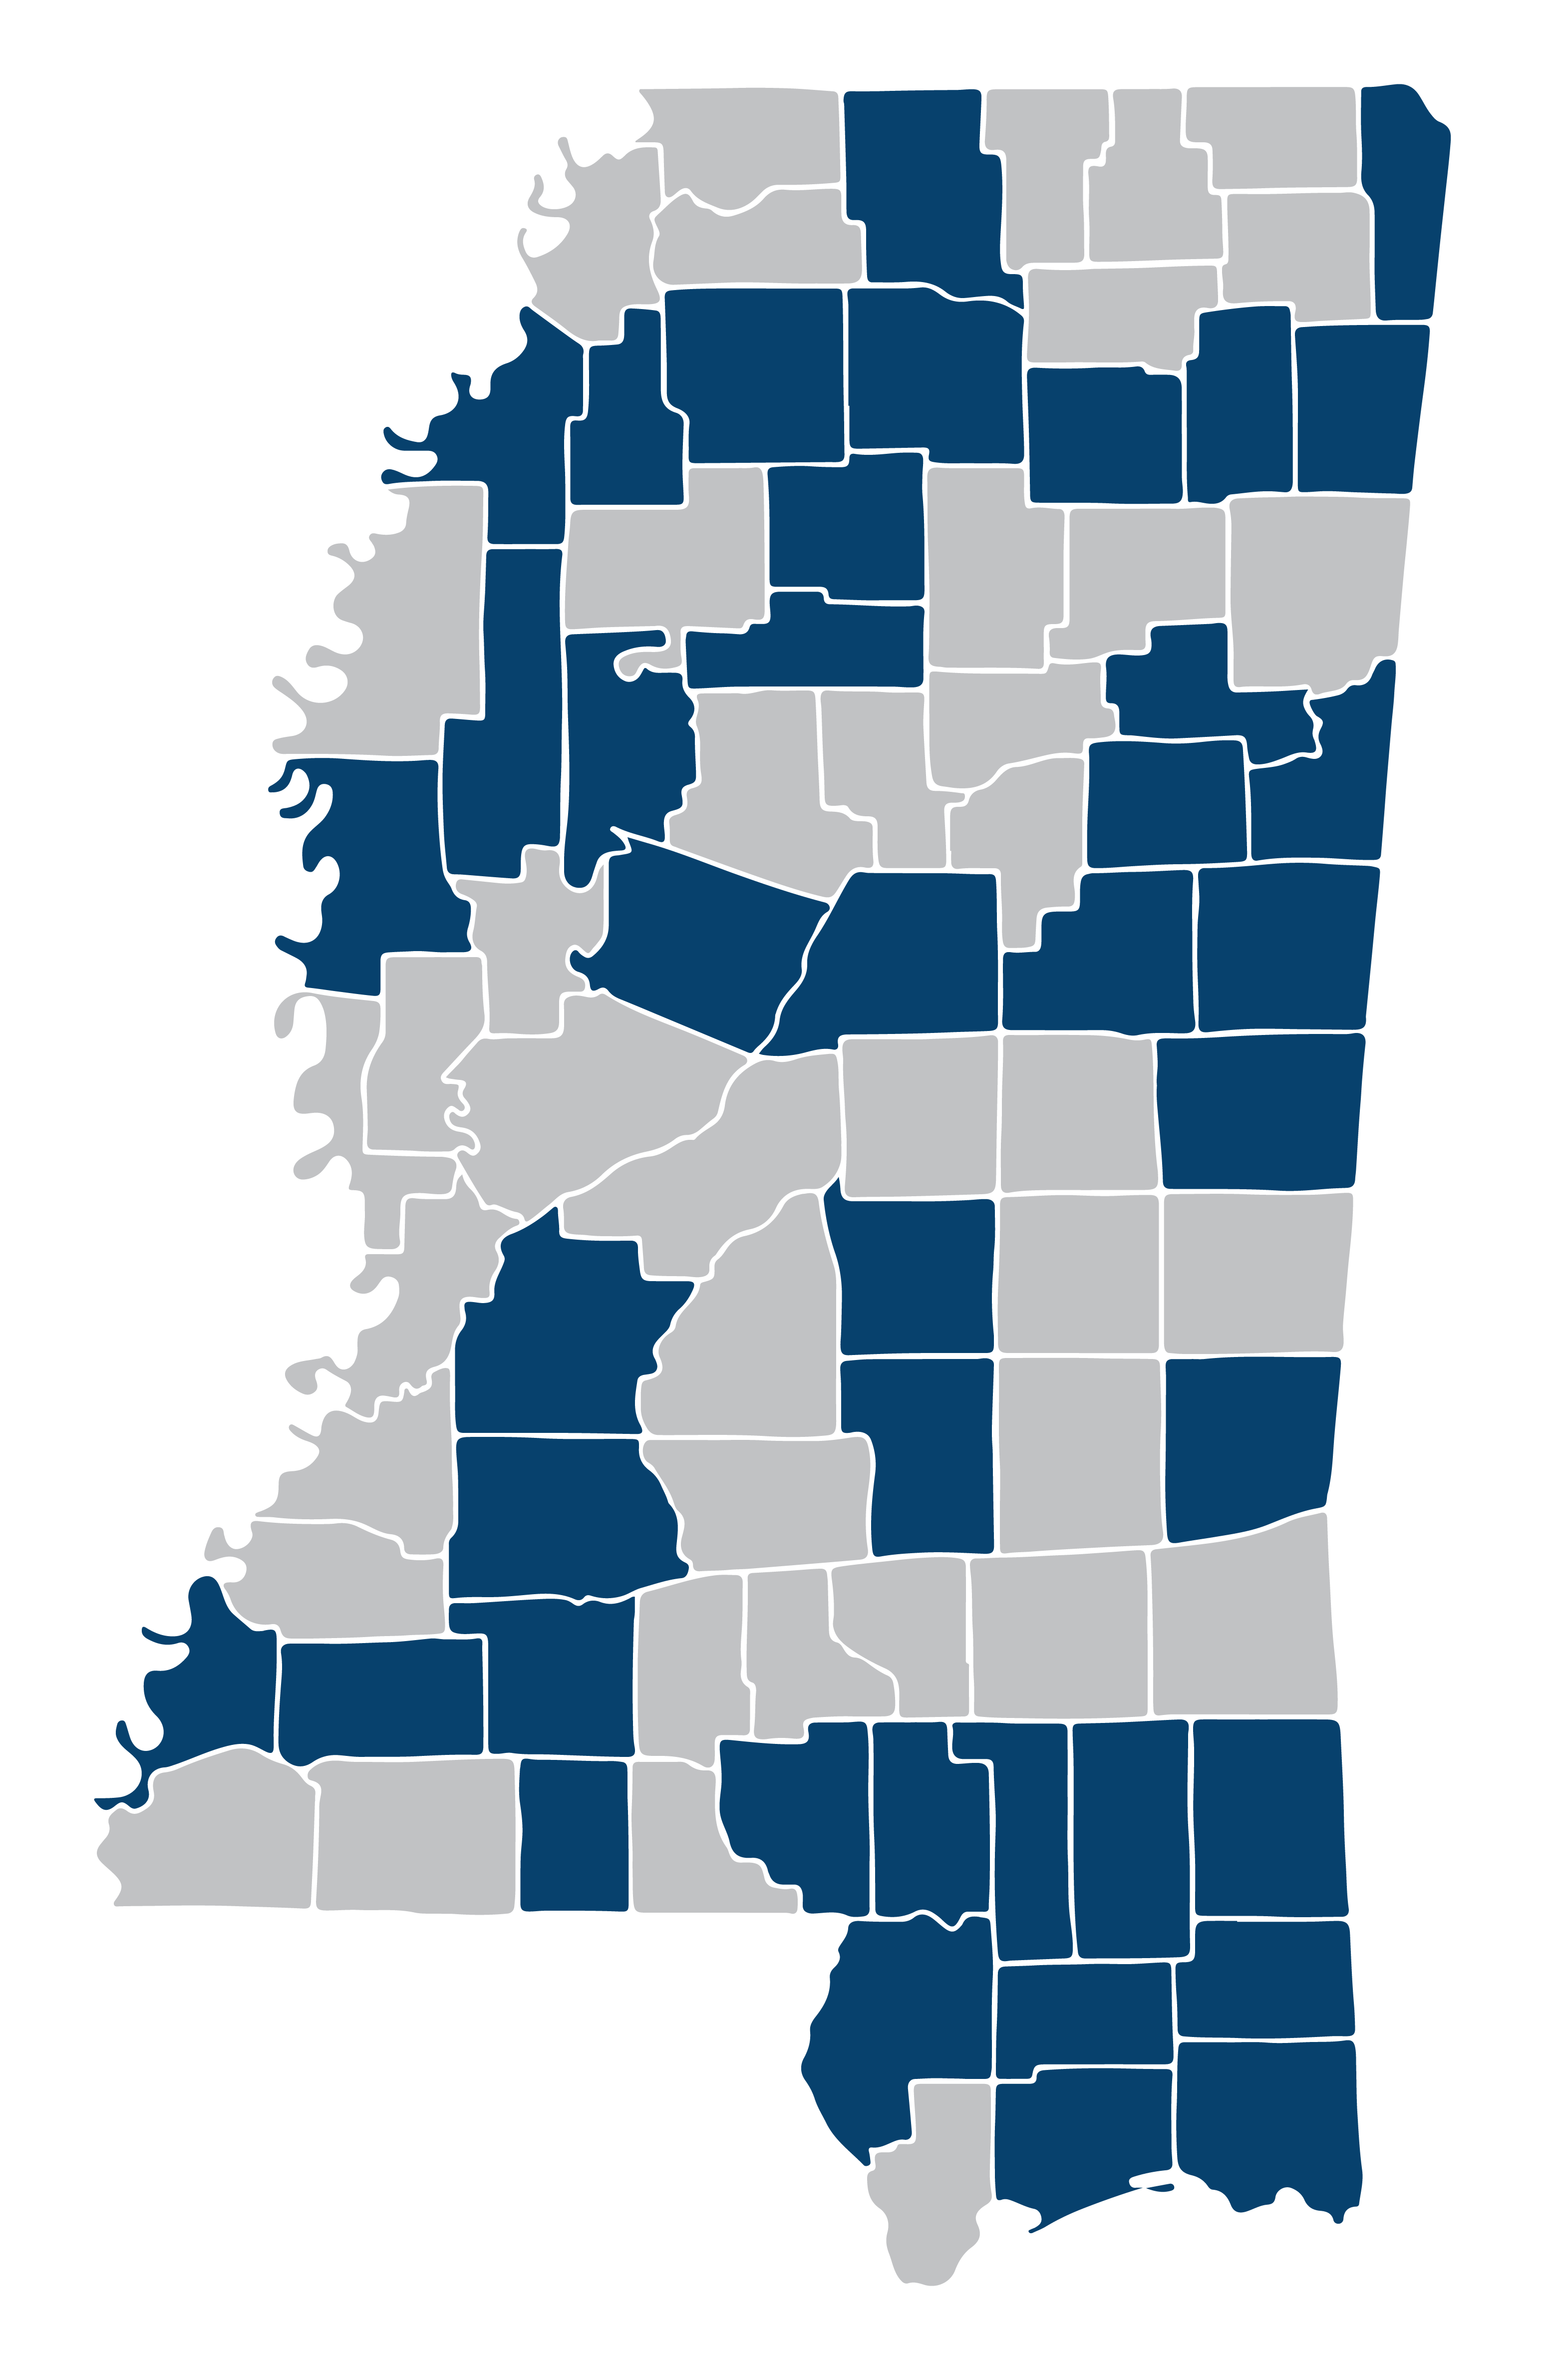 A map of Mississippi with 42 counties highlighted.